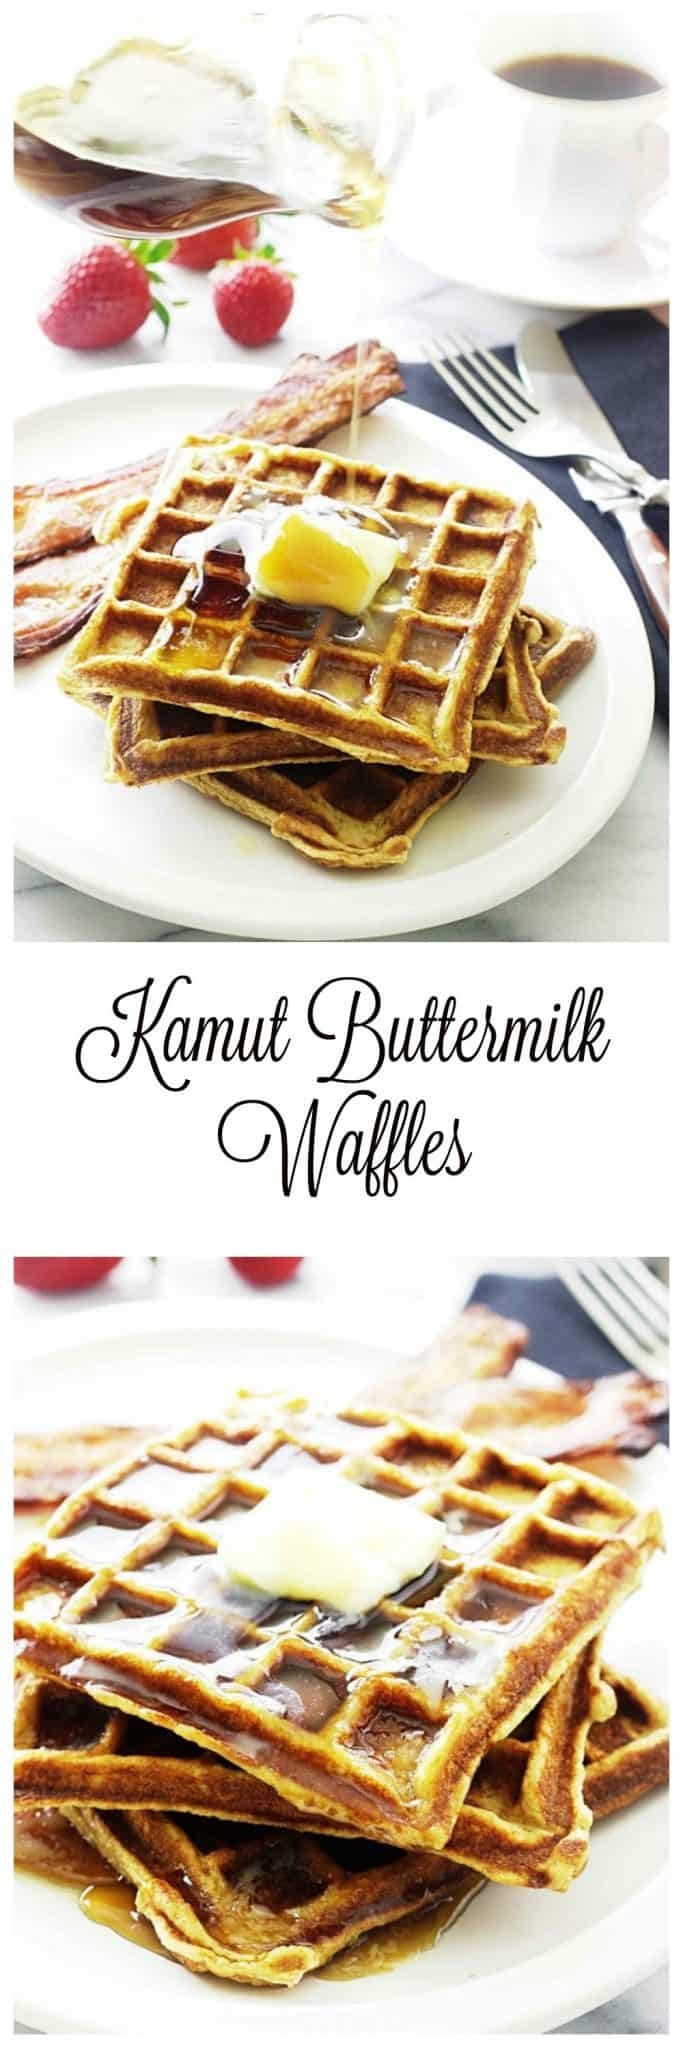 buttermilk waffles are made with stone ground kamut flour, whole grain oat flour and ground flax seed.